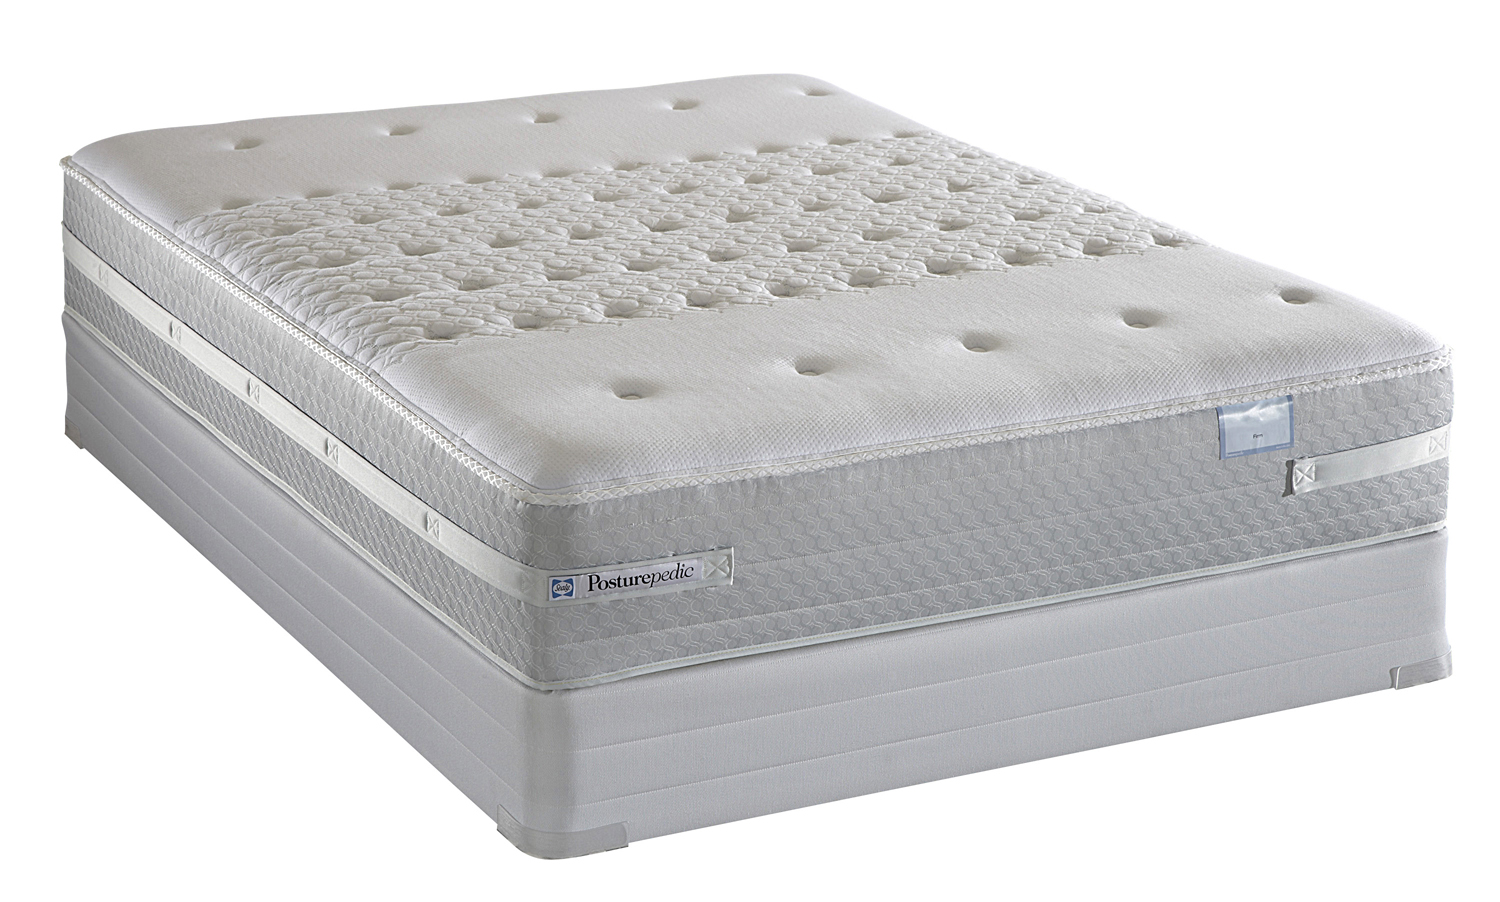 Sealy Posturepedic Adjustable Bed Reviews : Sealy posturepedic firm mattress